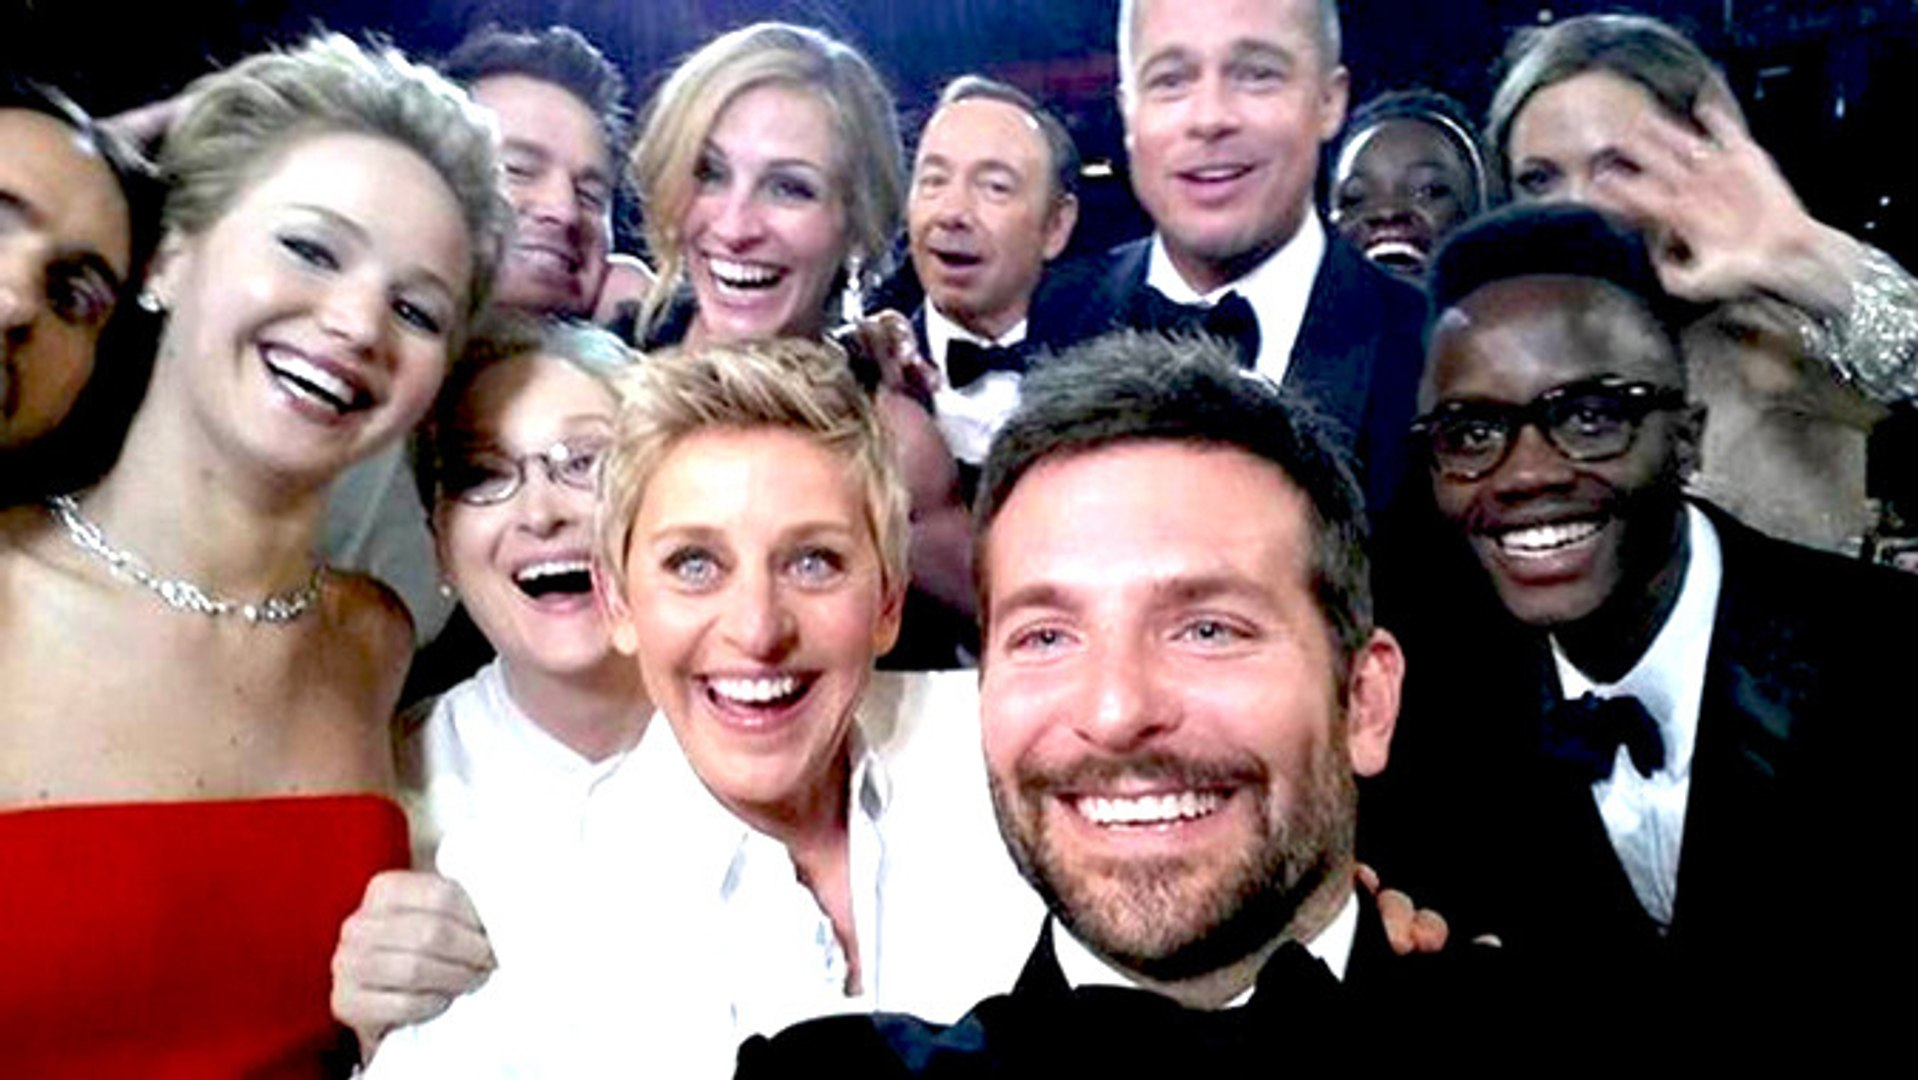 Oscars Recap: Who Won And What Went Down At The Academy Awards?